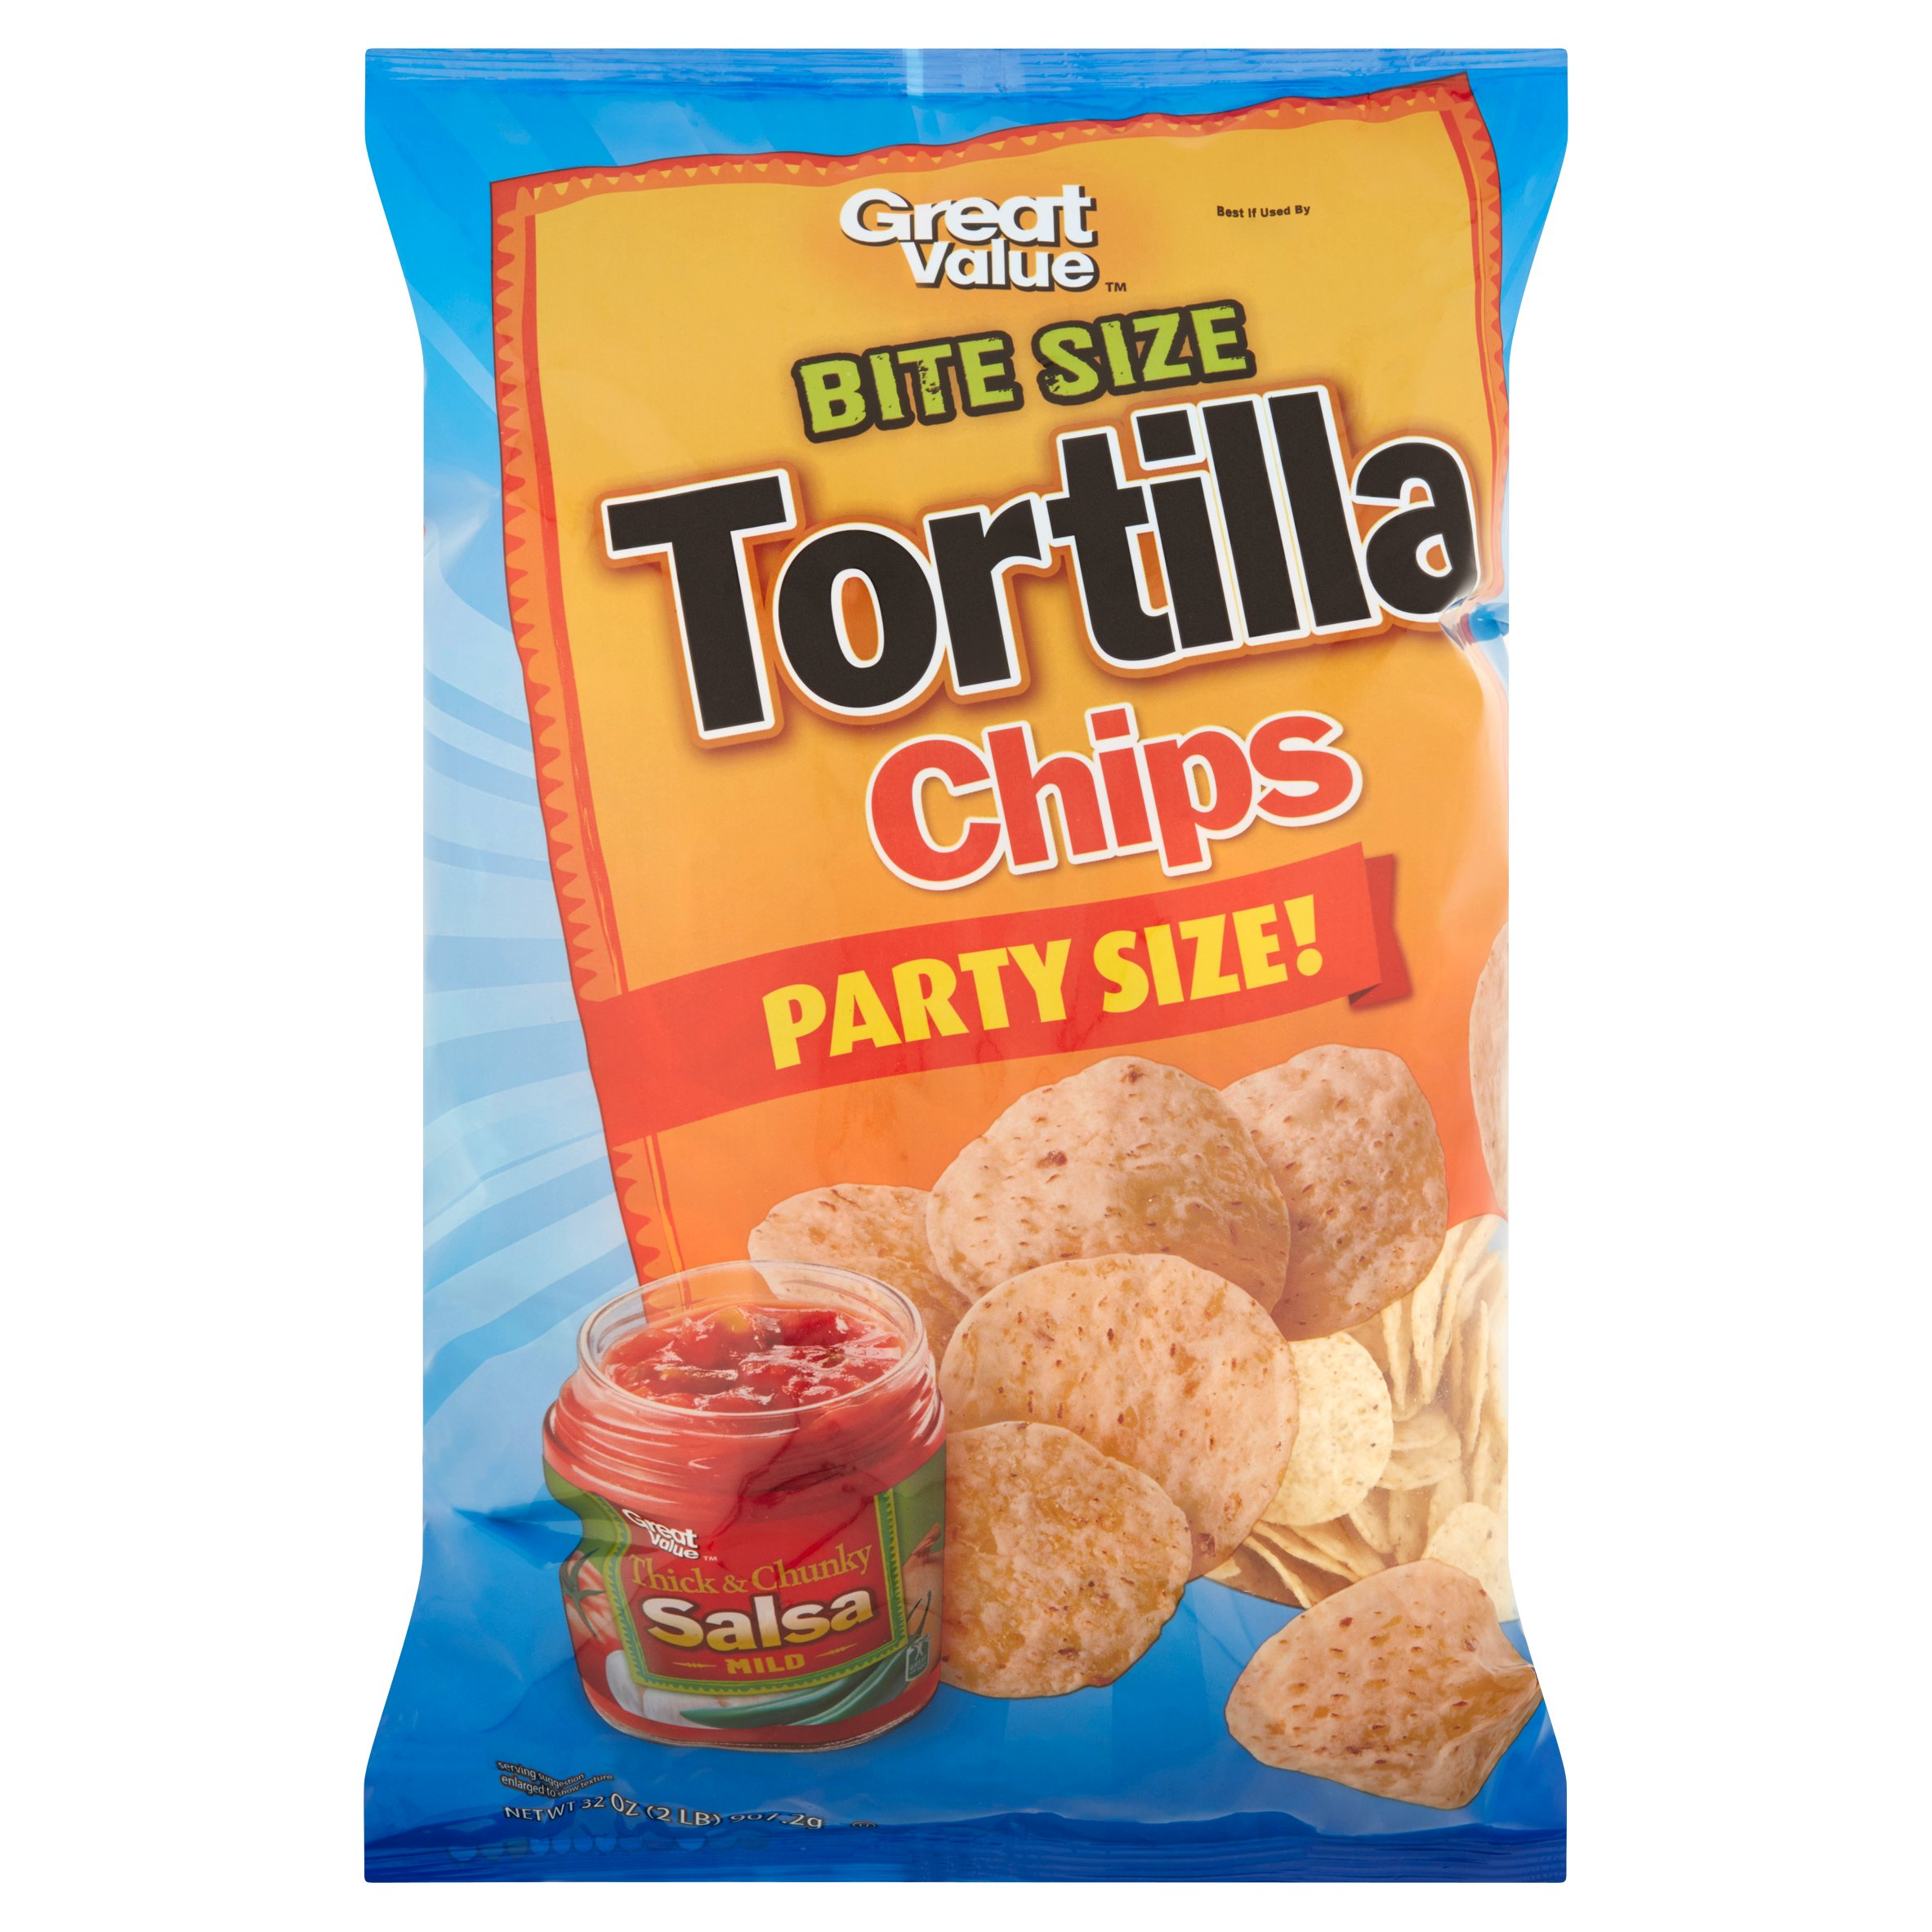 Great Value Bite Size Tortilla Chips Party Size!, 32 oz